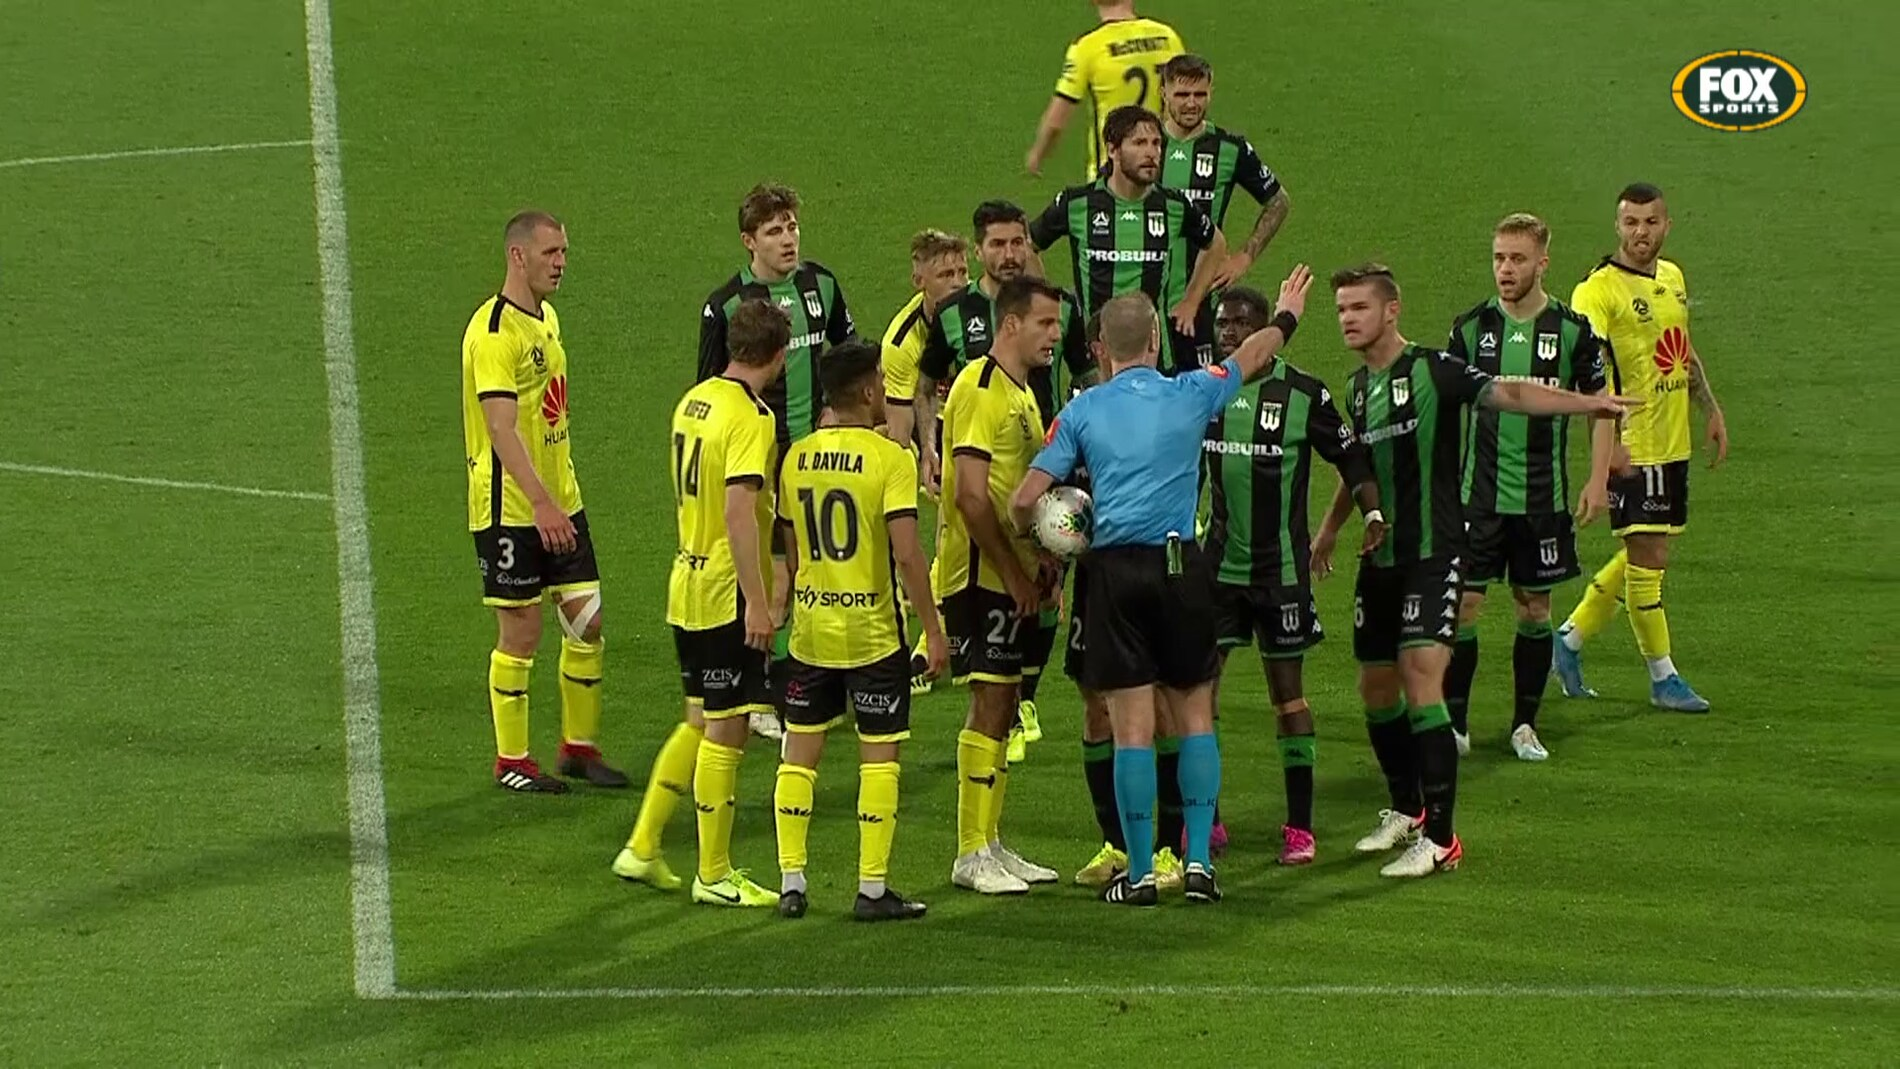 Wellington Phoenix were awarded an indirect free kick, but it should have been a penalty.